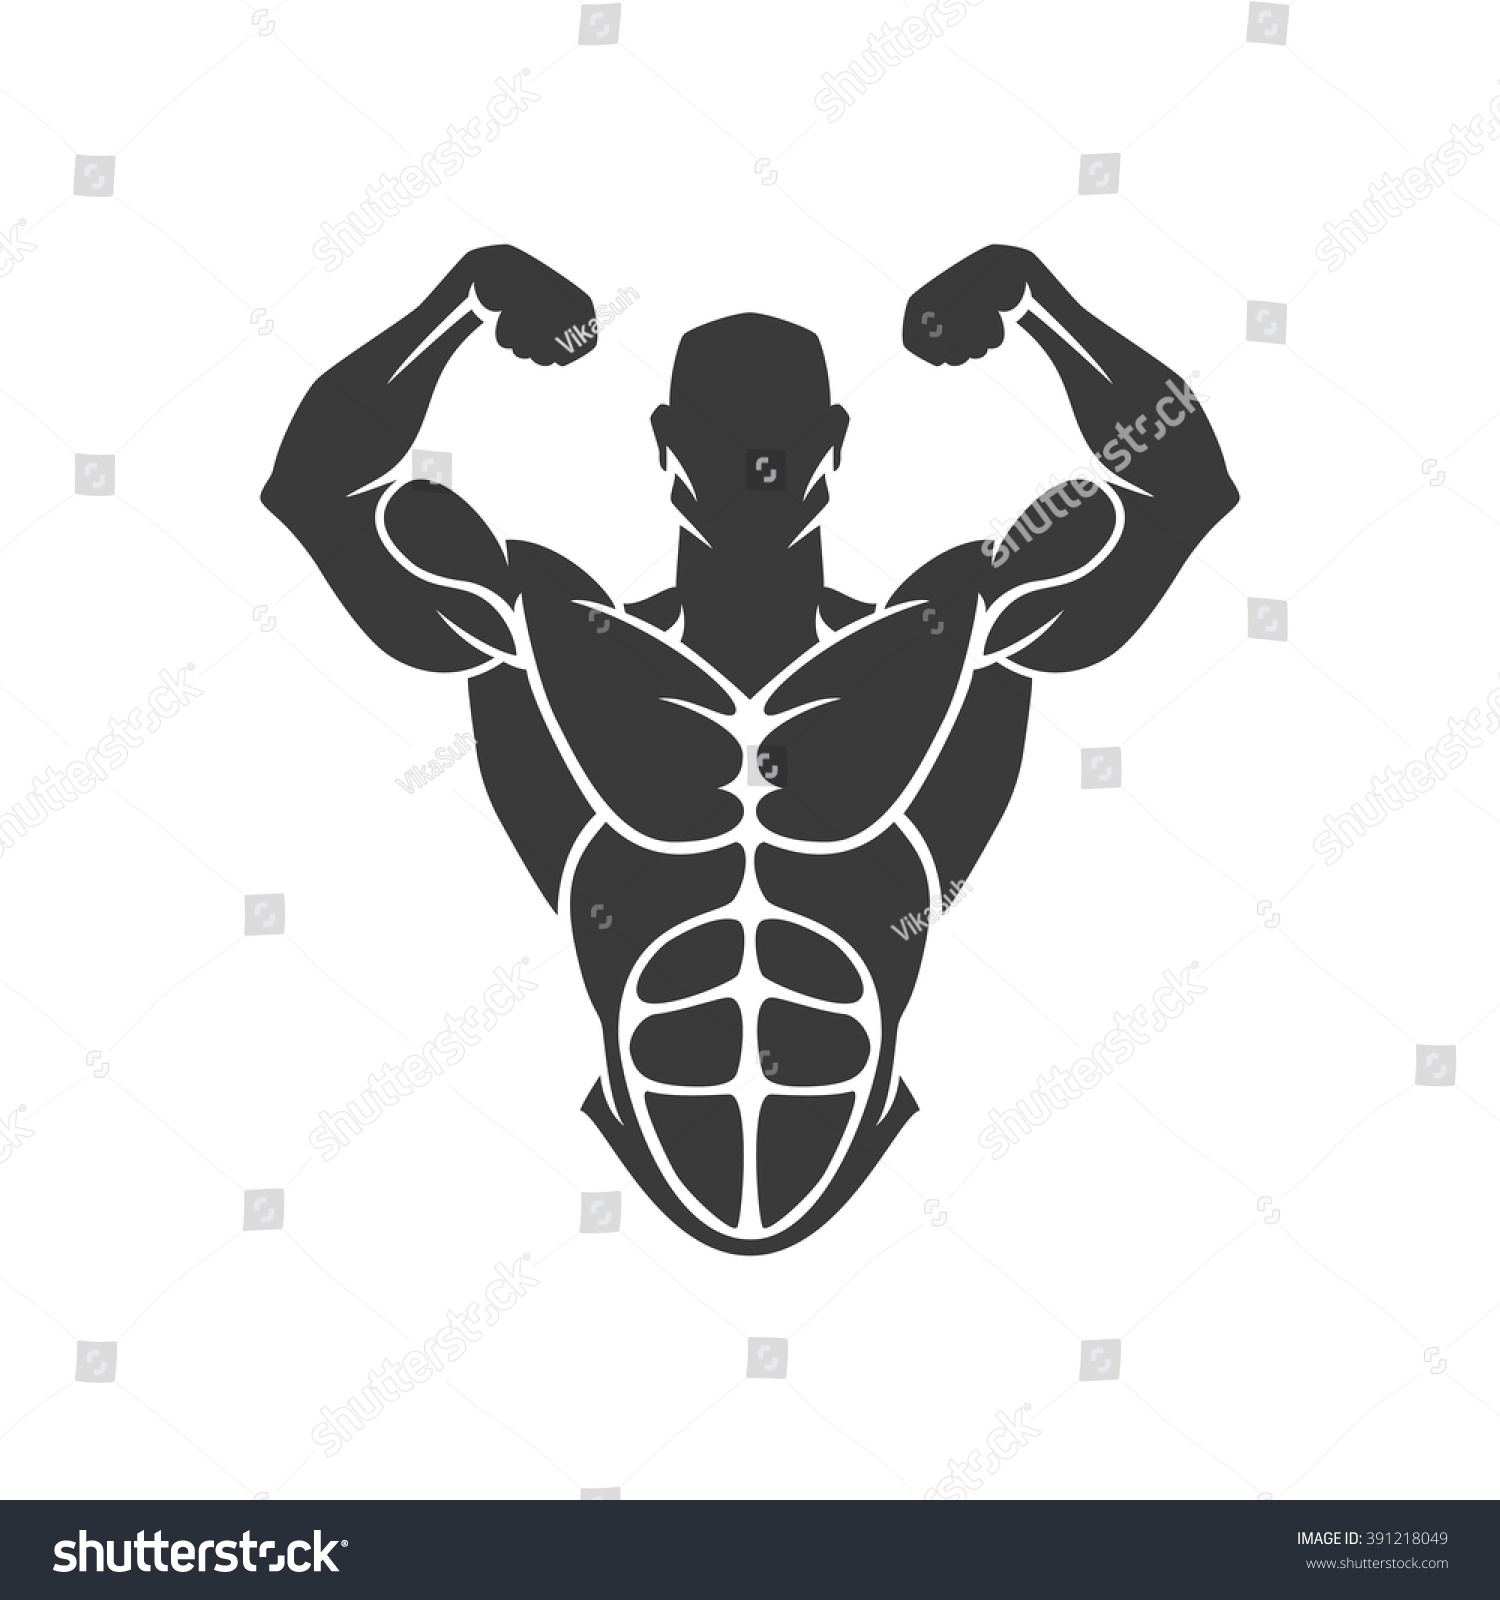 Female bodybuilding logos graphic design